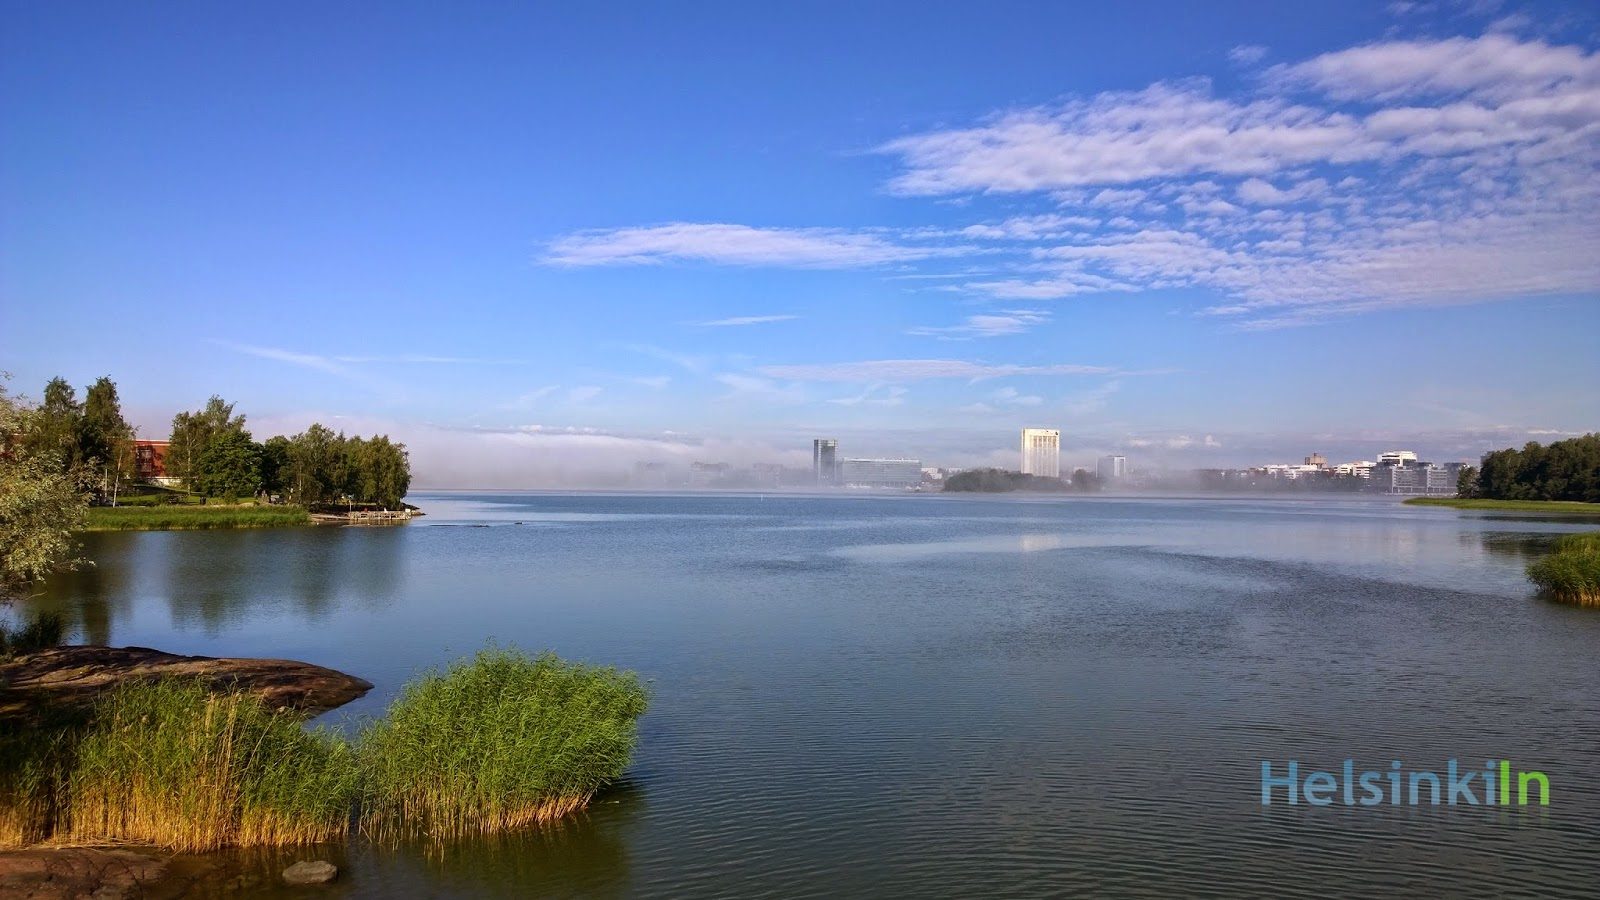 fog over Keilaniemi